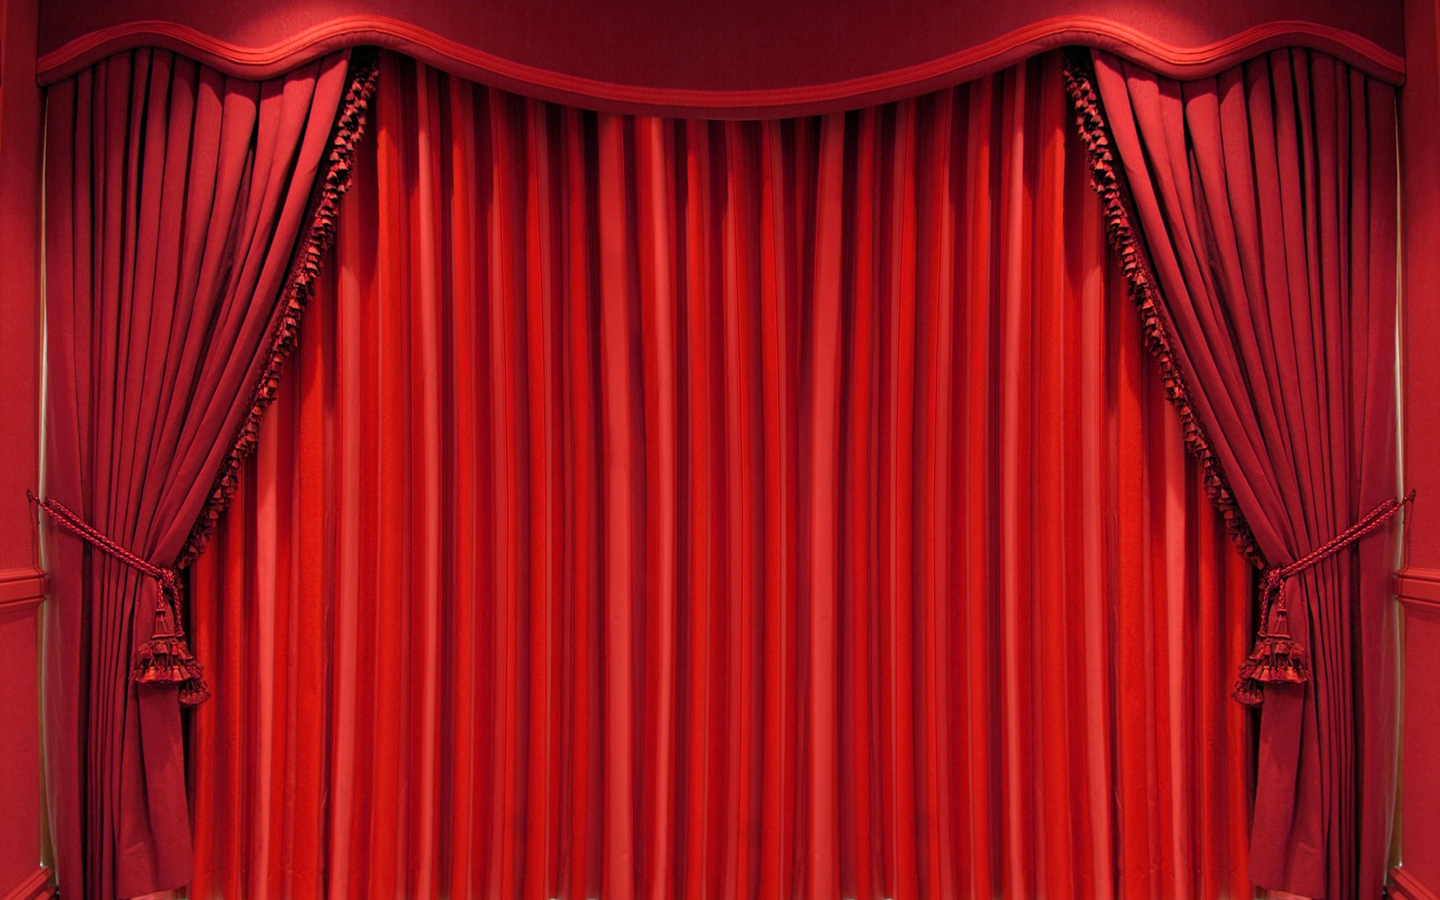 Background Curtain | Background Desktops Pics